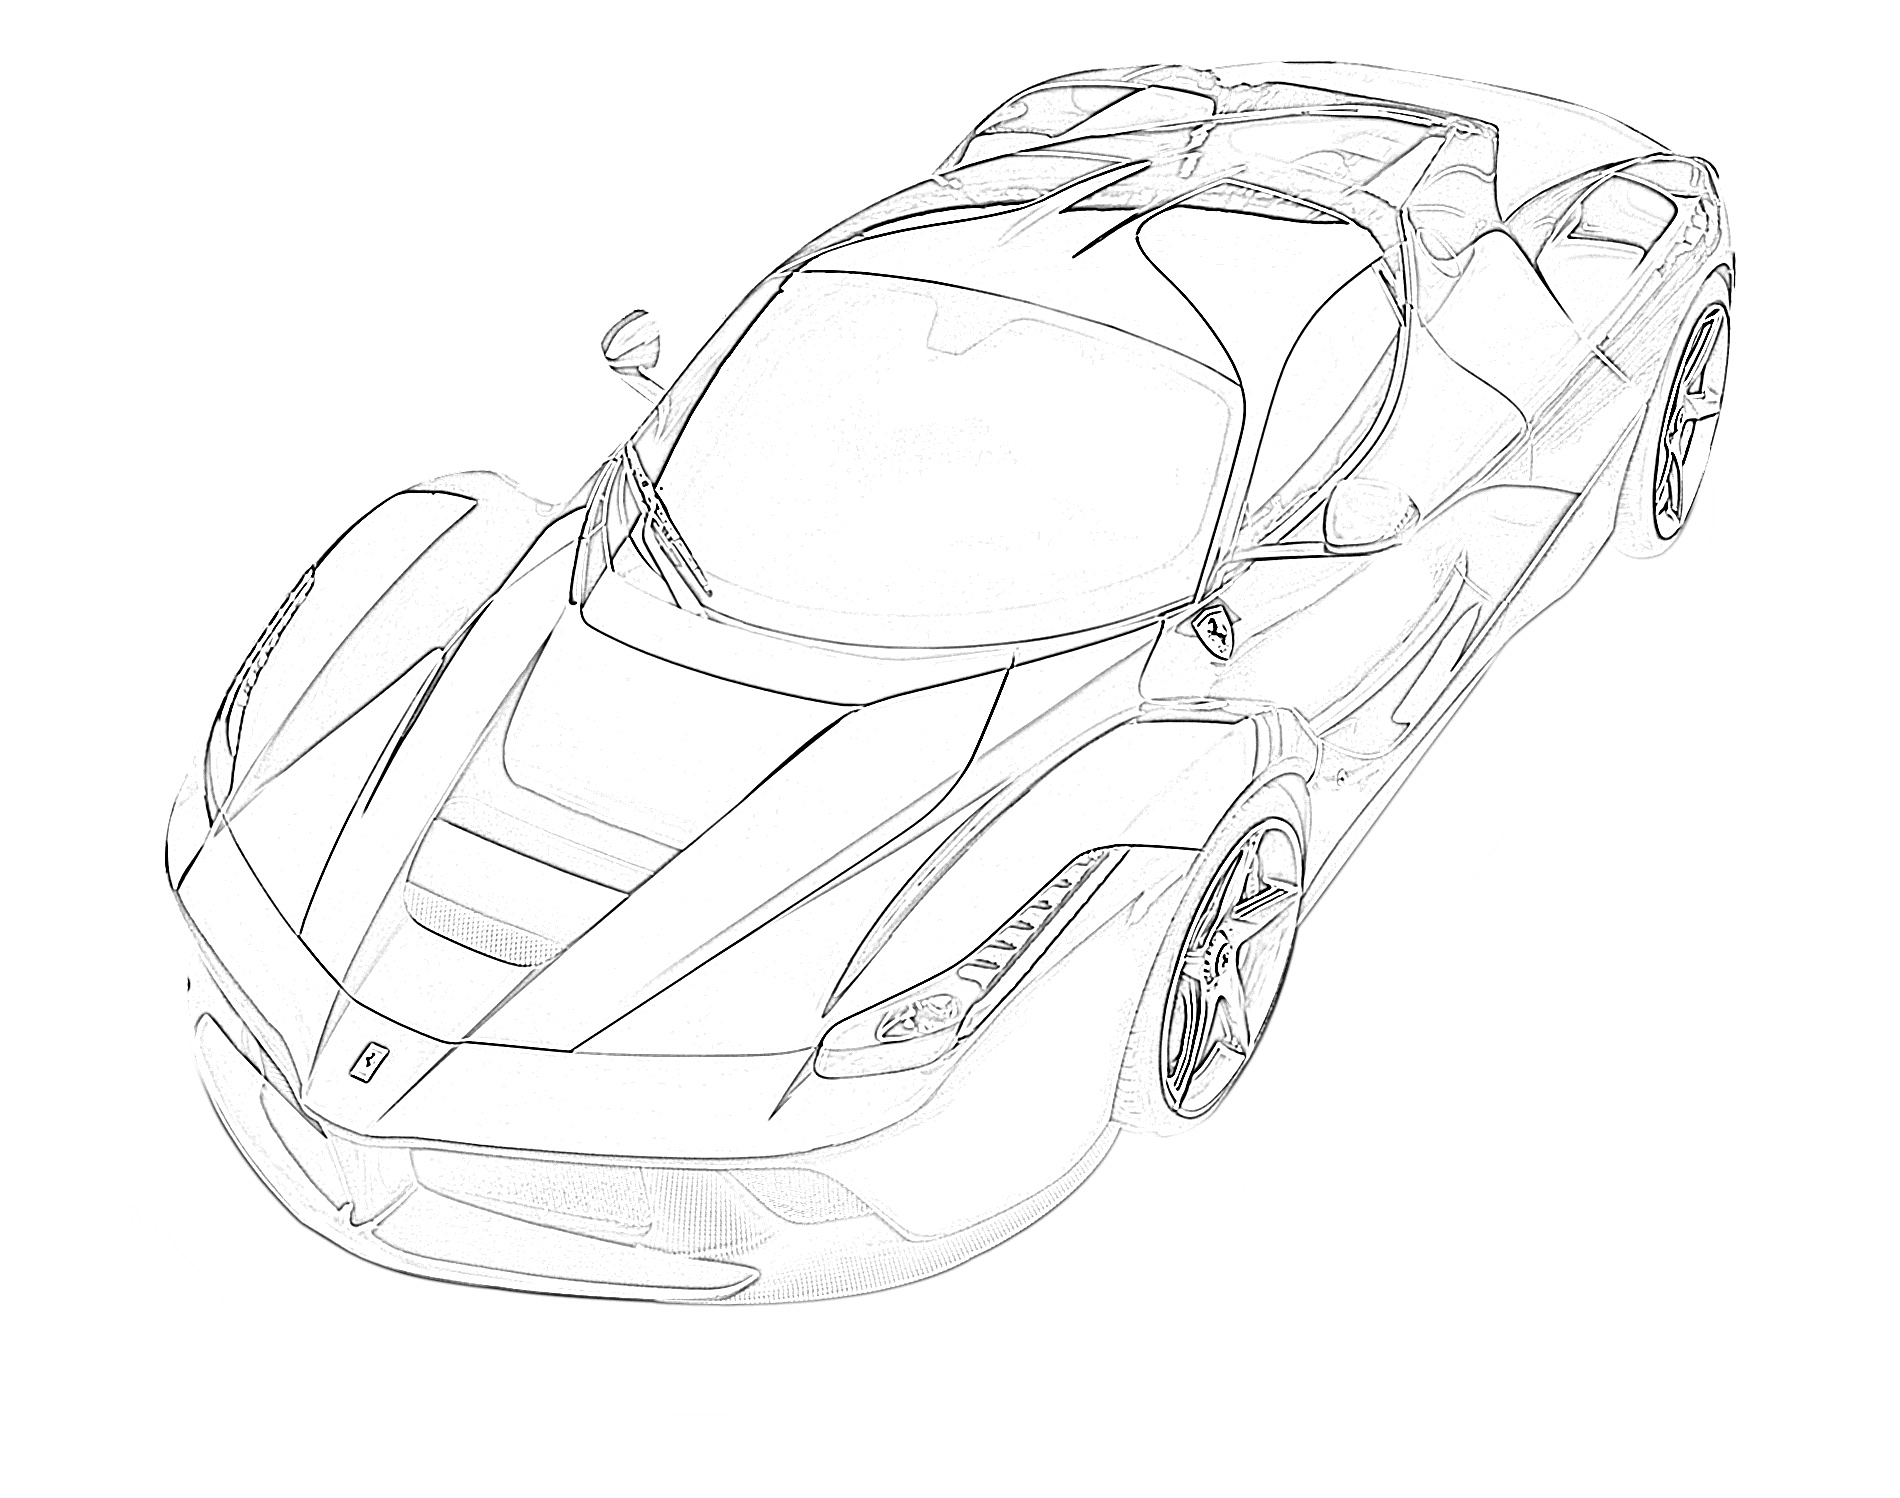 Sports car ferrari top down view coloring page